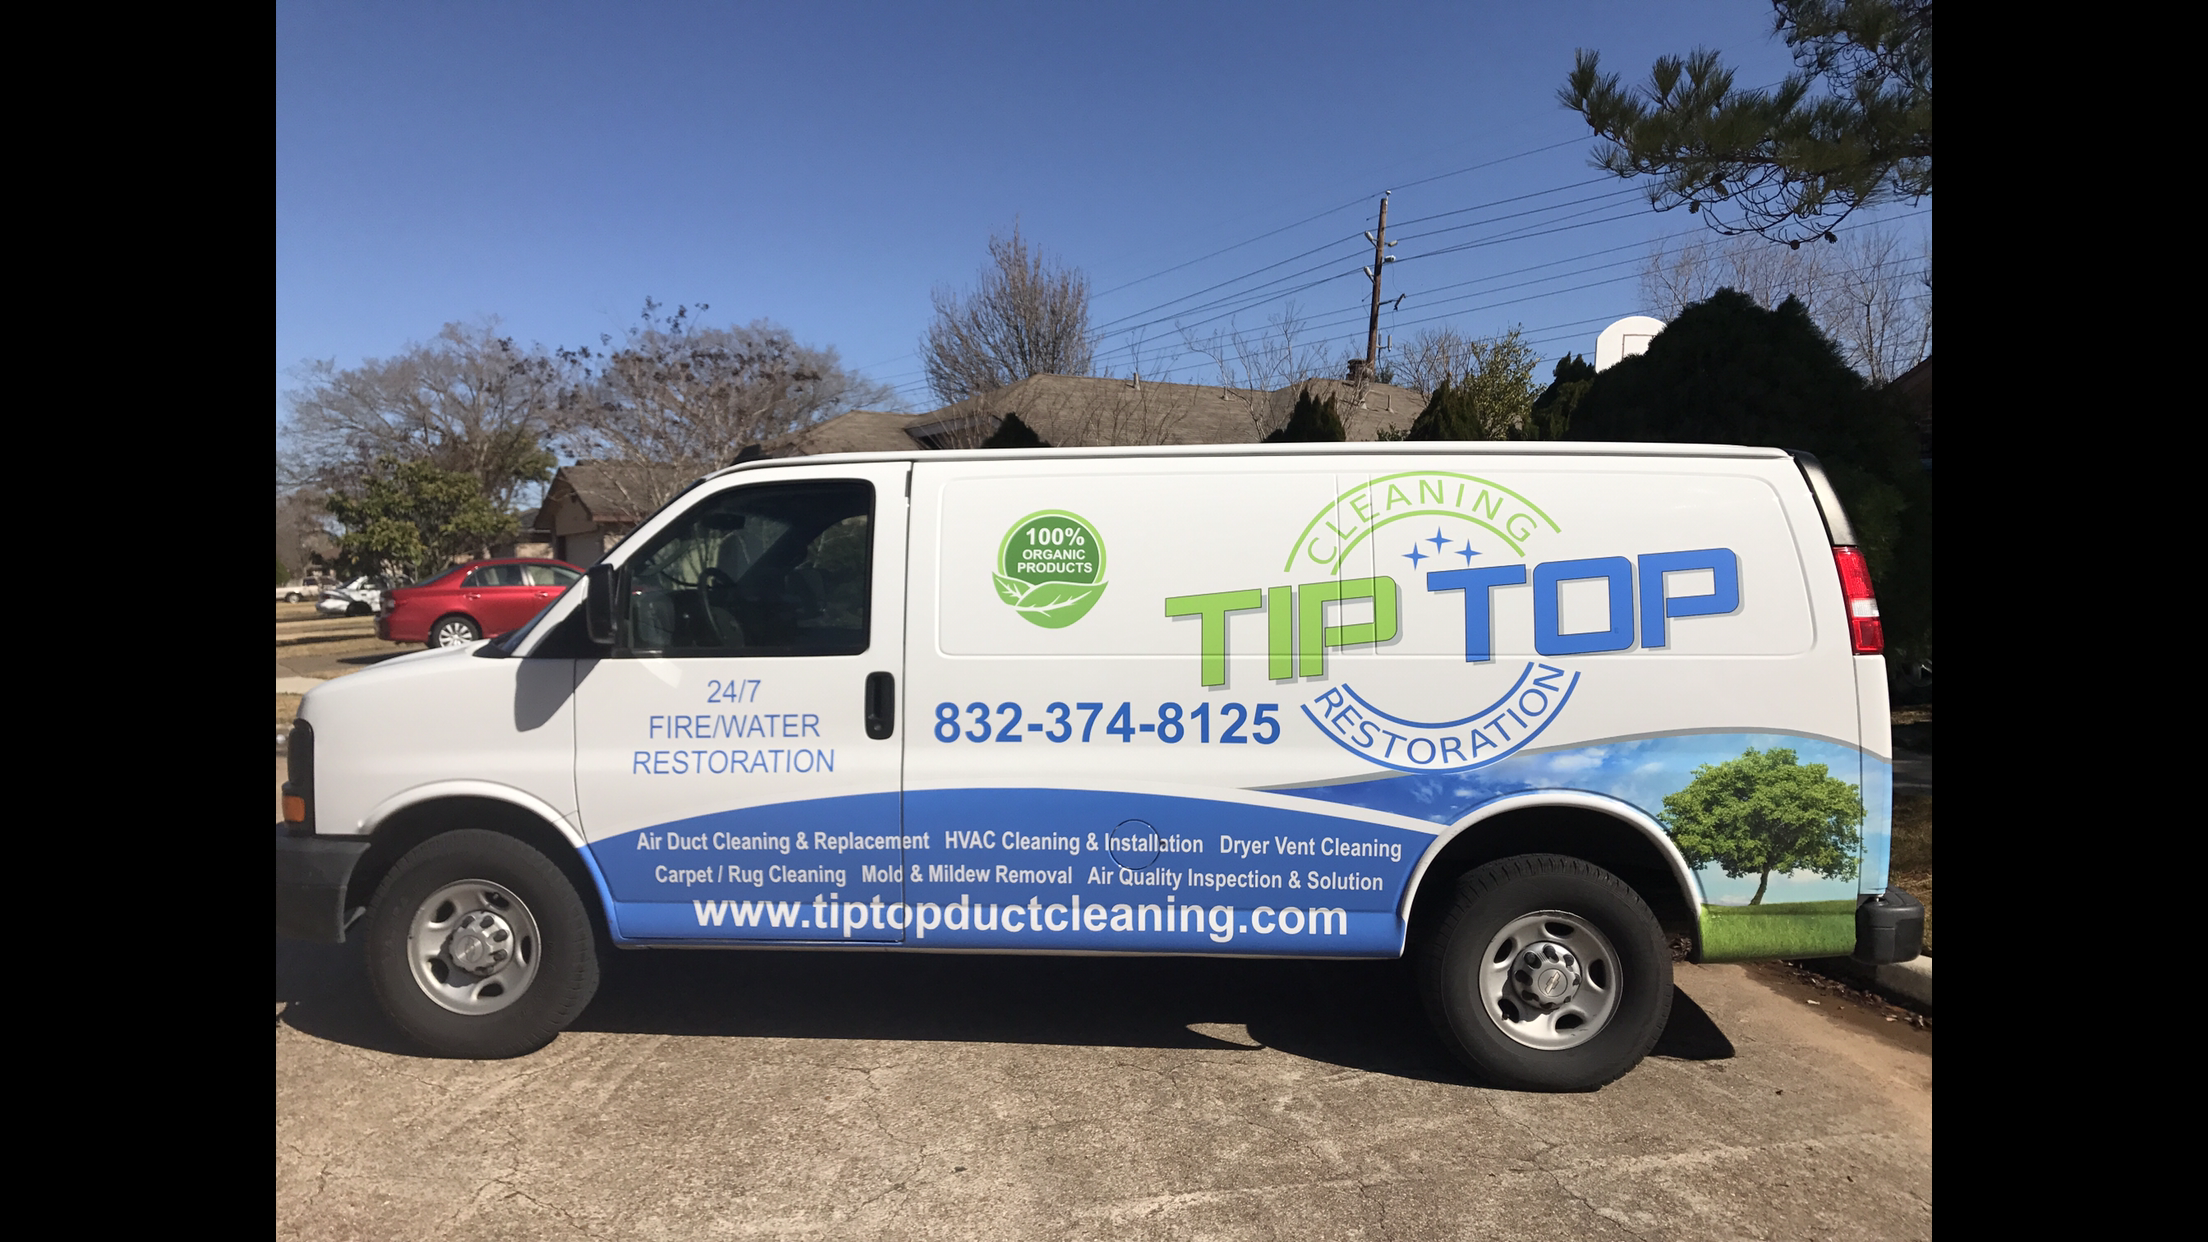 Air Duct Cleaning Houston Brookshire Clean Air Ducts Air Duct Duct Cleaning